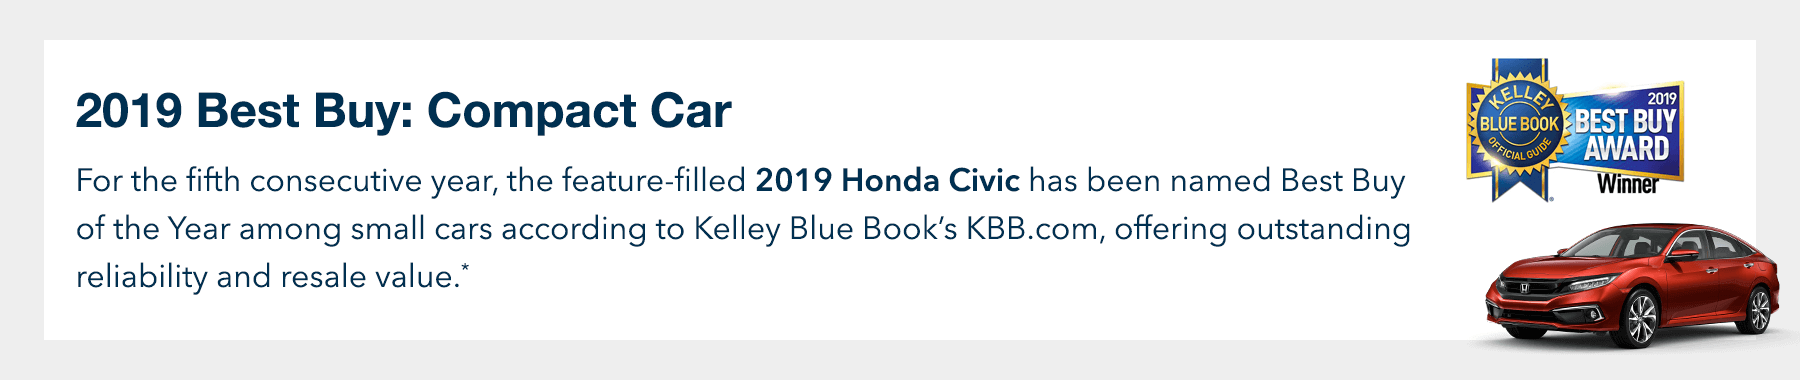 2019 Honda Civic Sedan Kelley Blue Book Best Buy: Compact Car Award Slider